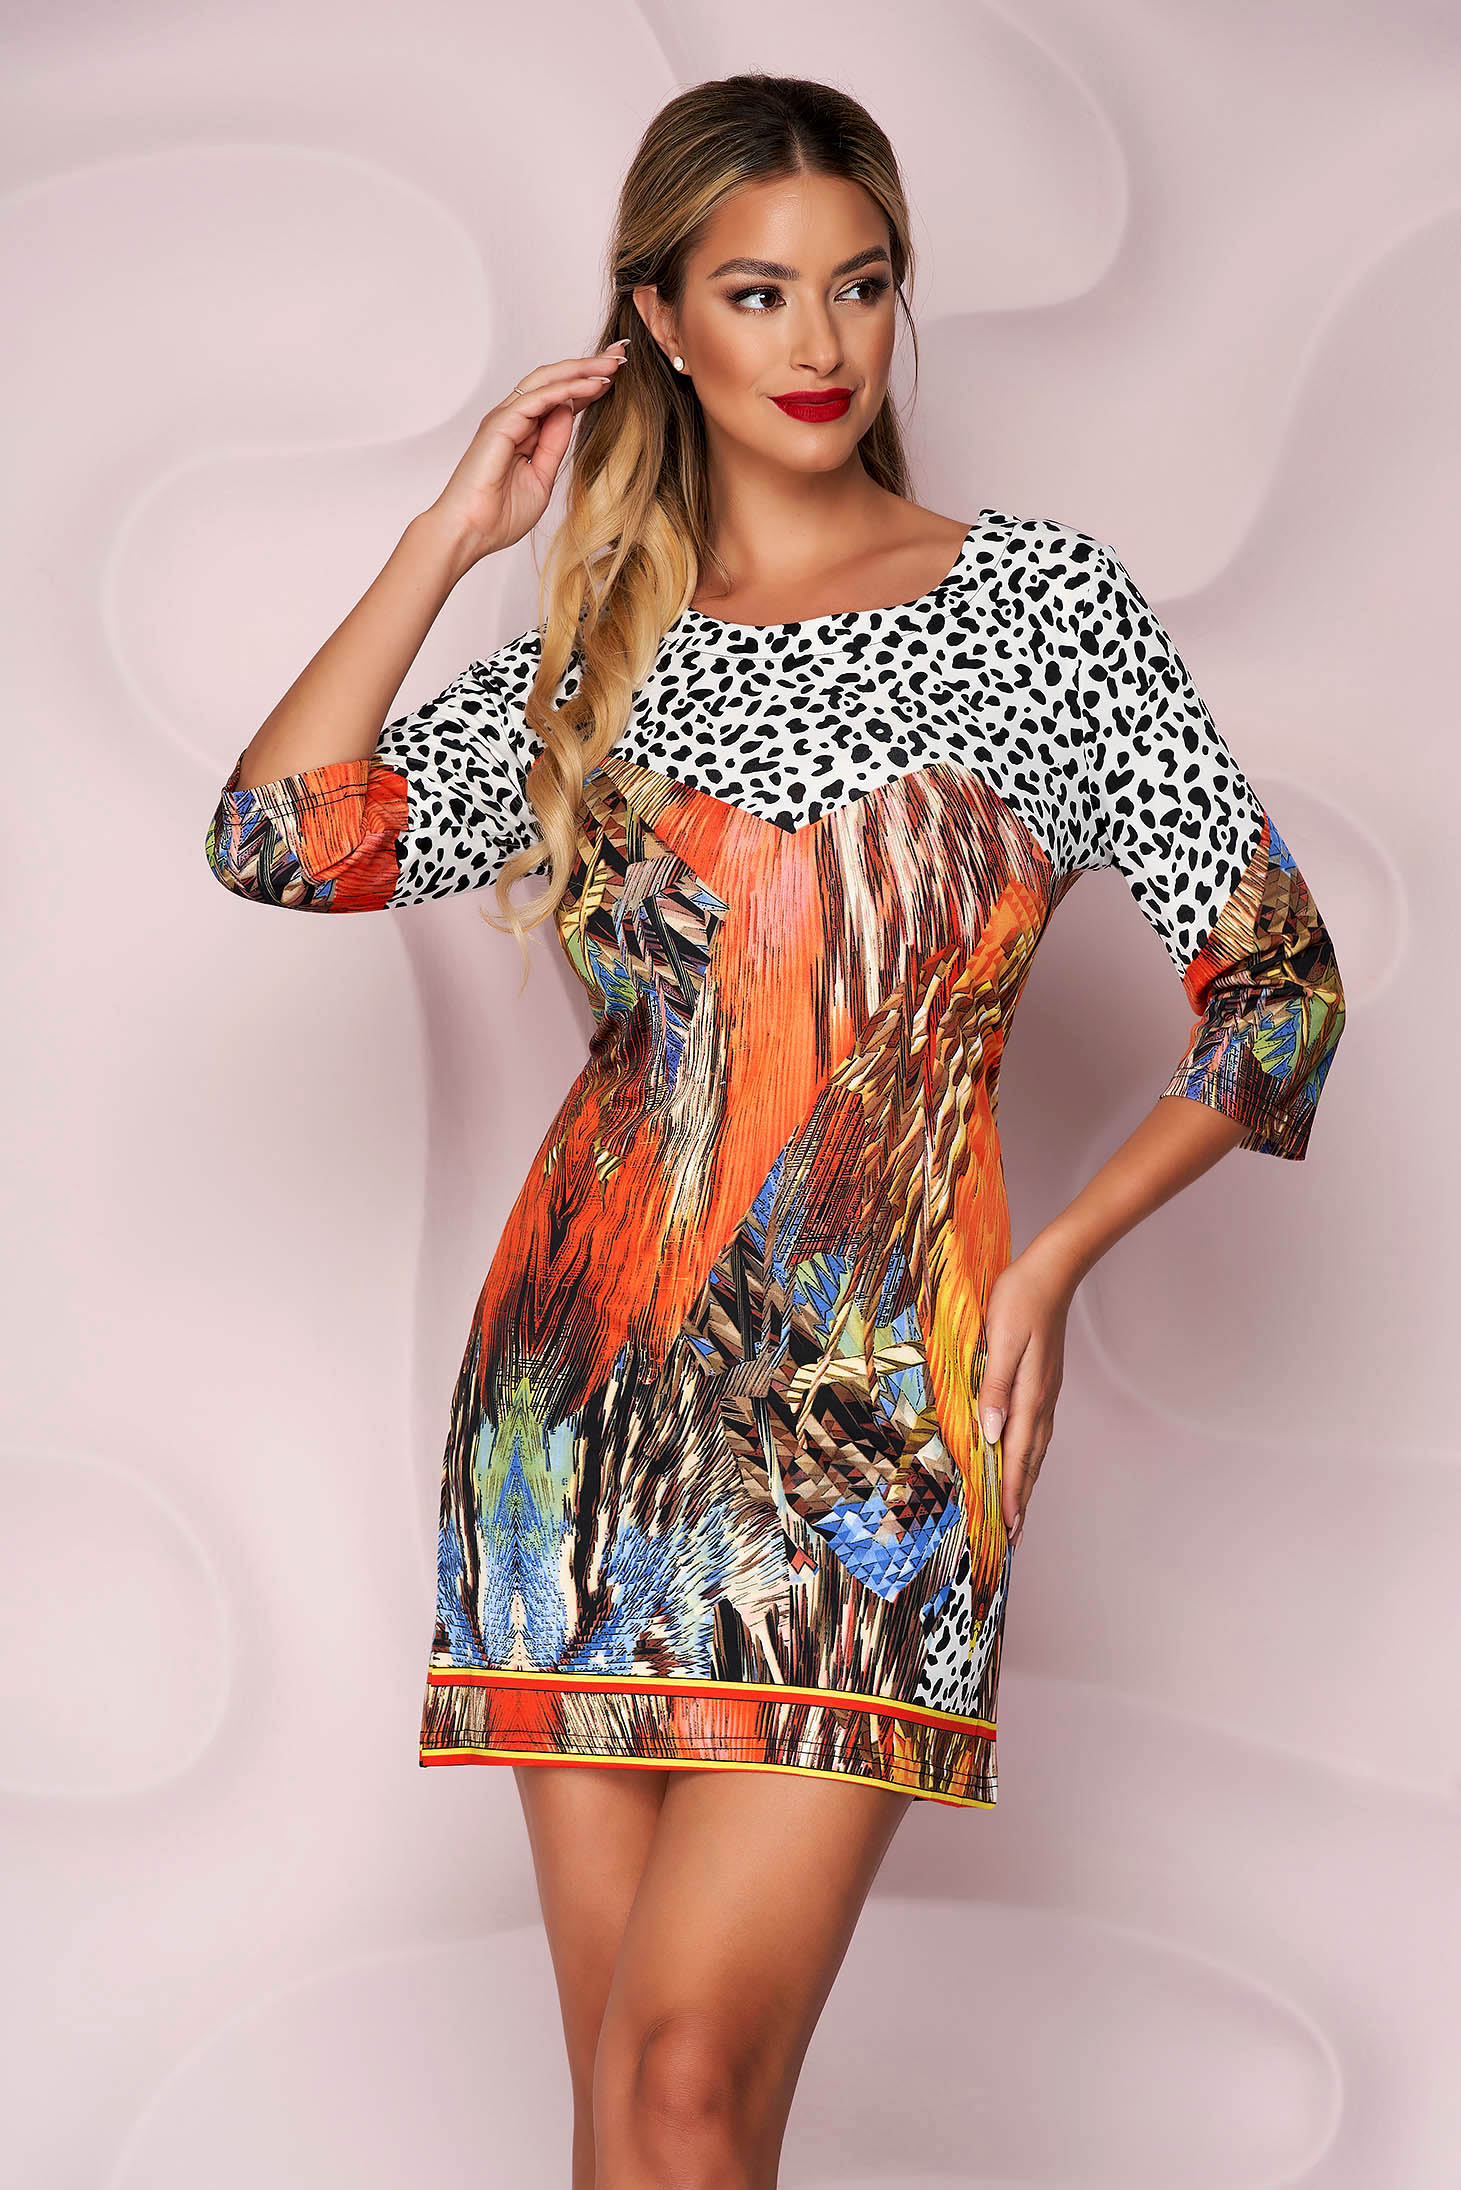 Dress short cut cotton slightly elastic fabric office straight with graphic details